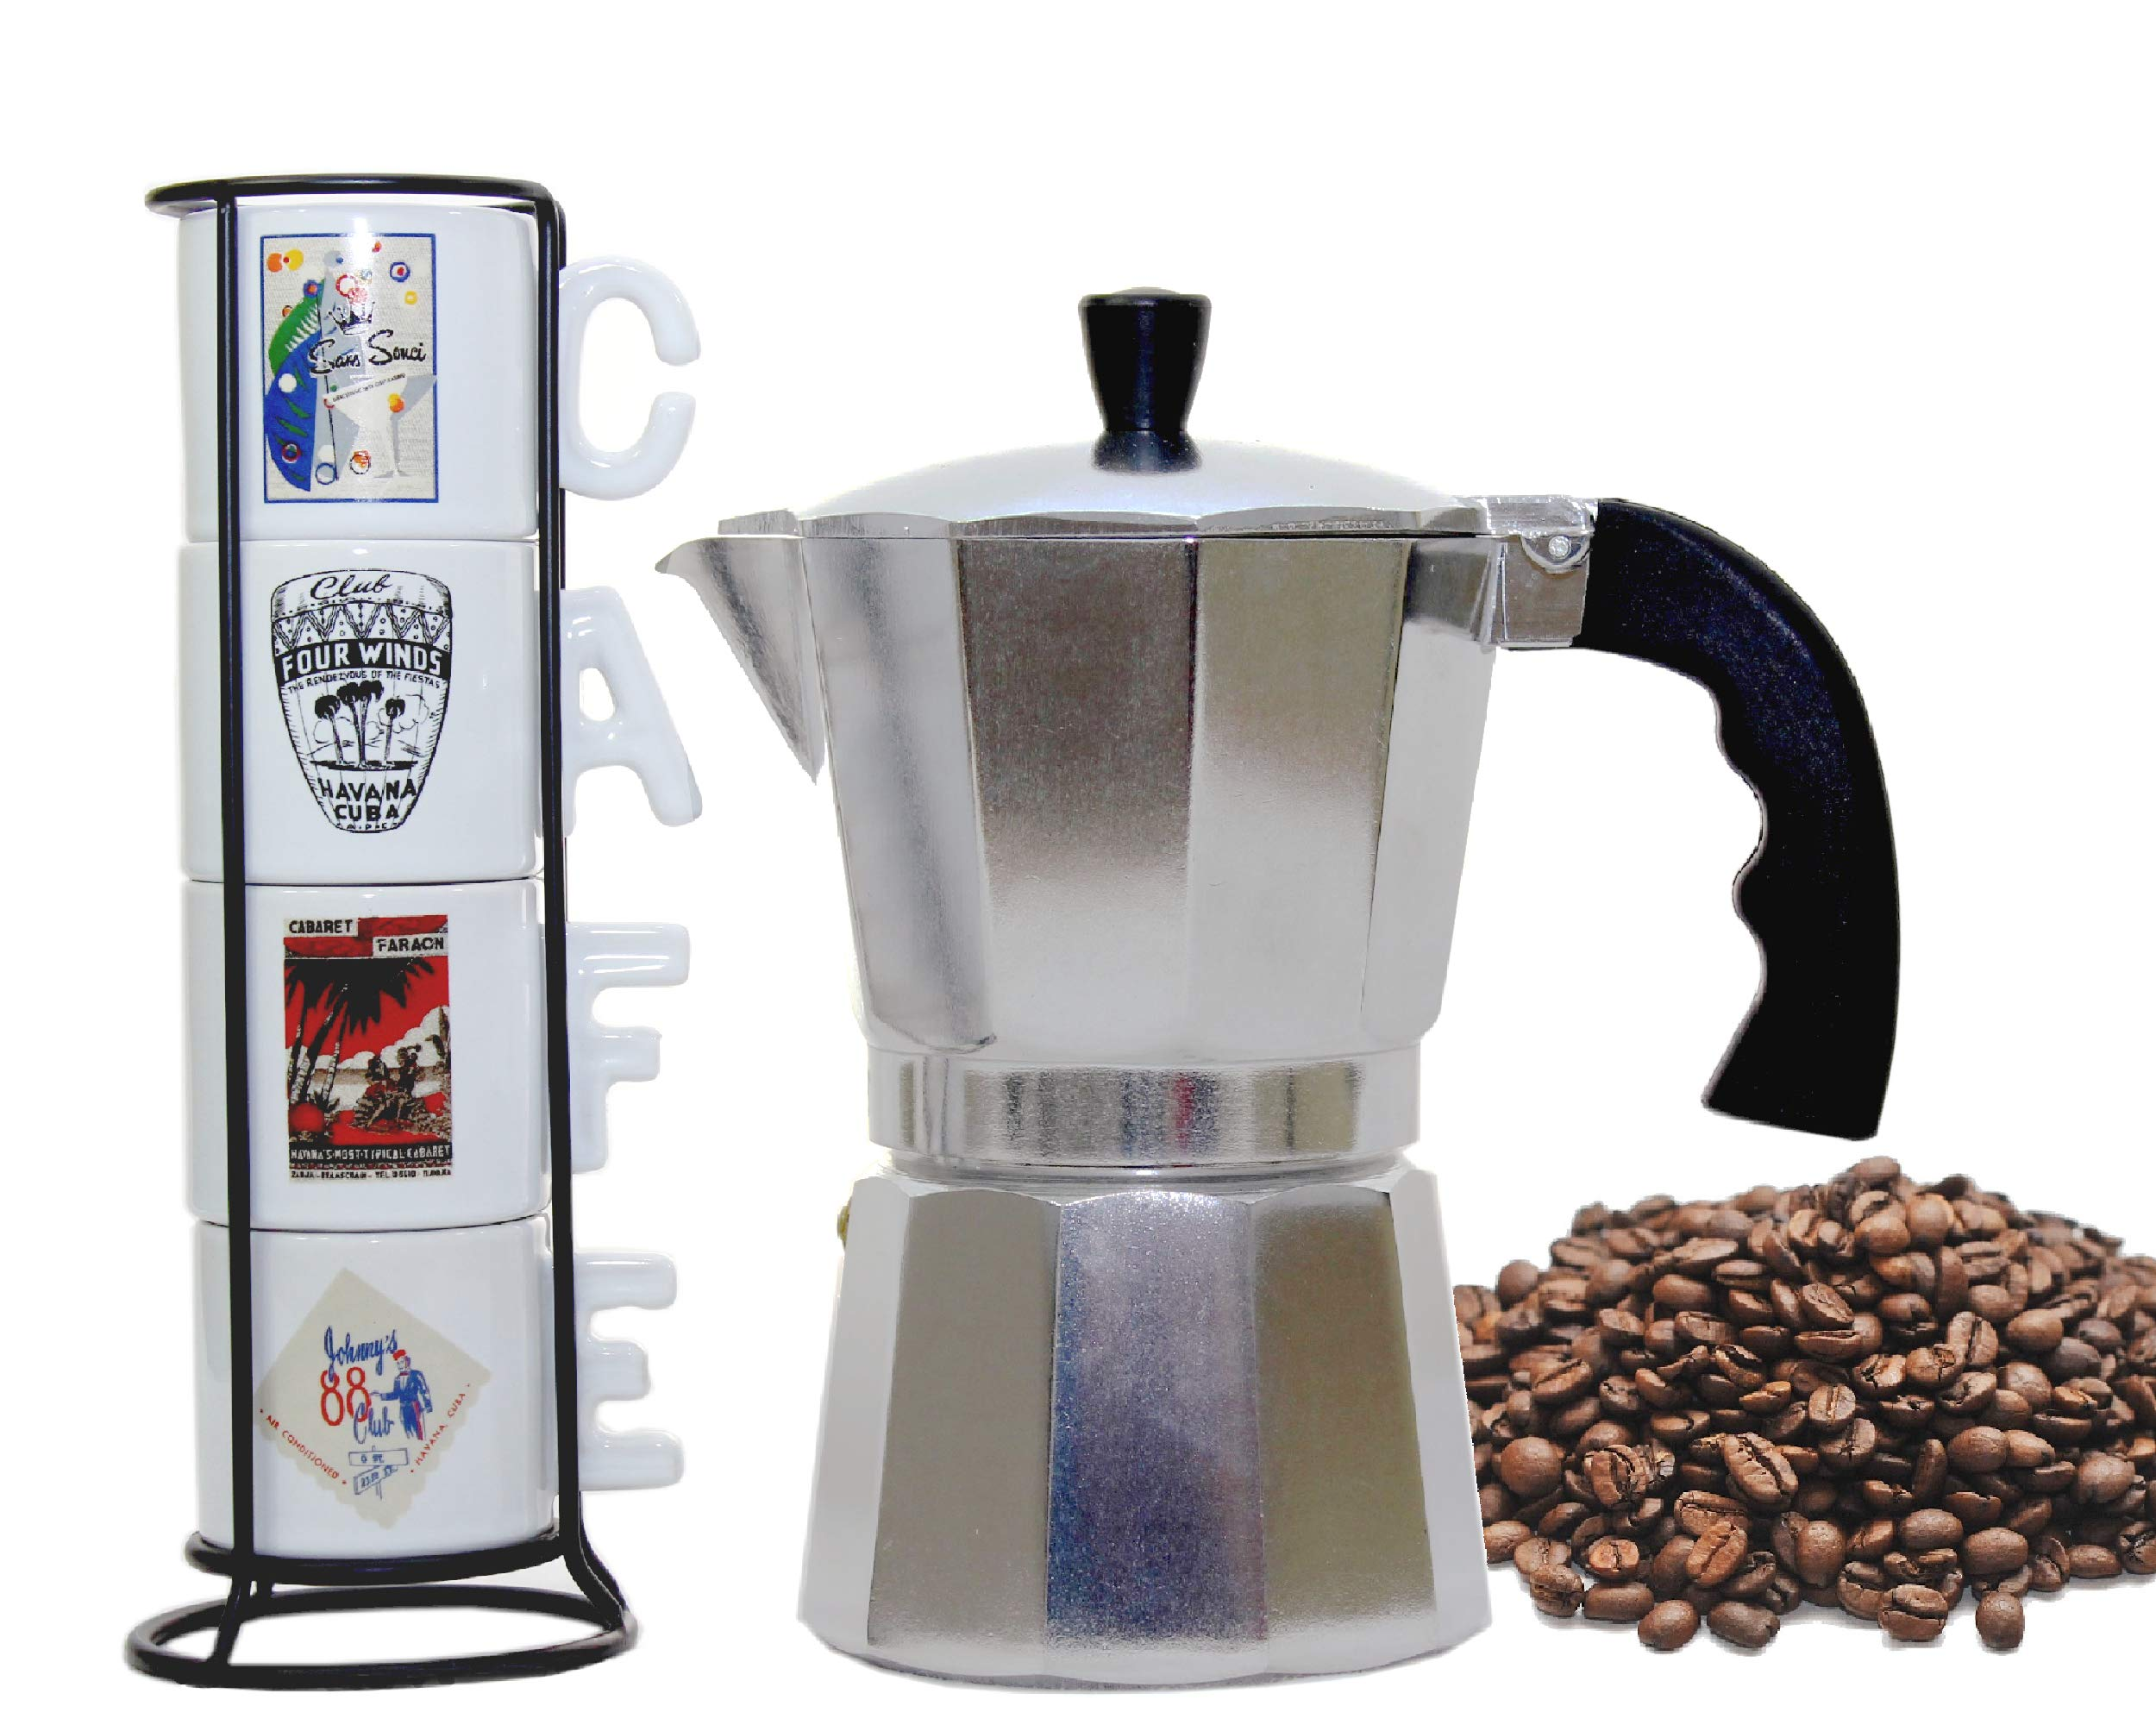 Imusa Classic Aluminum Stovetop Espresso Coffee Maker/Moka Pot 6-cups. Bundled with a White Coffee Mugs Set of 4 Printed with the most Famous Cuban Night Clubs and Black Rack.